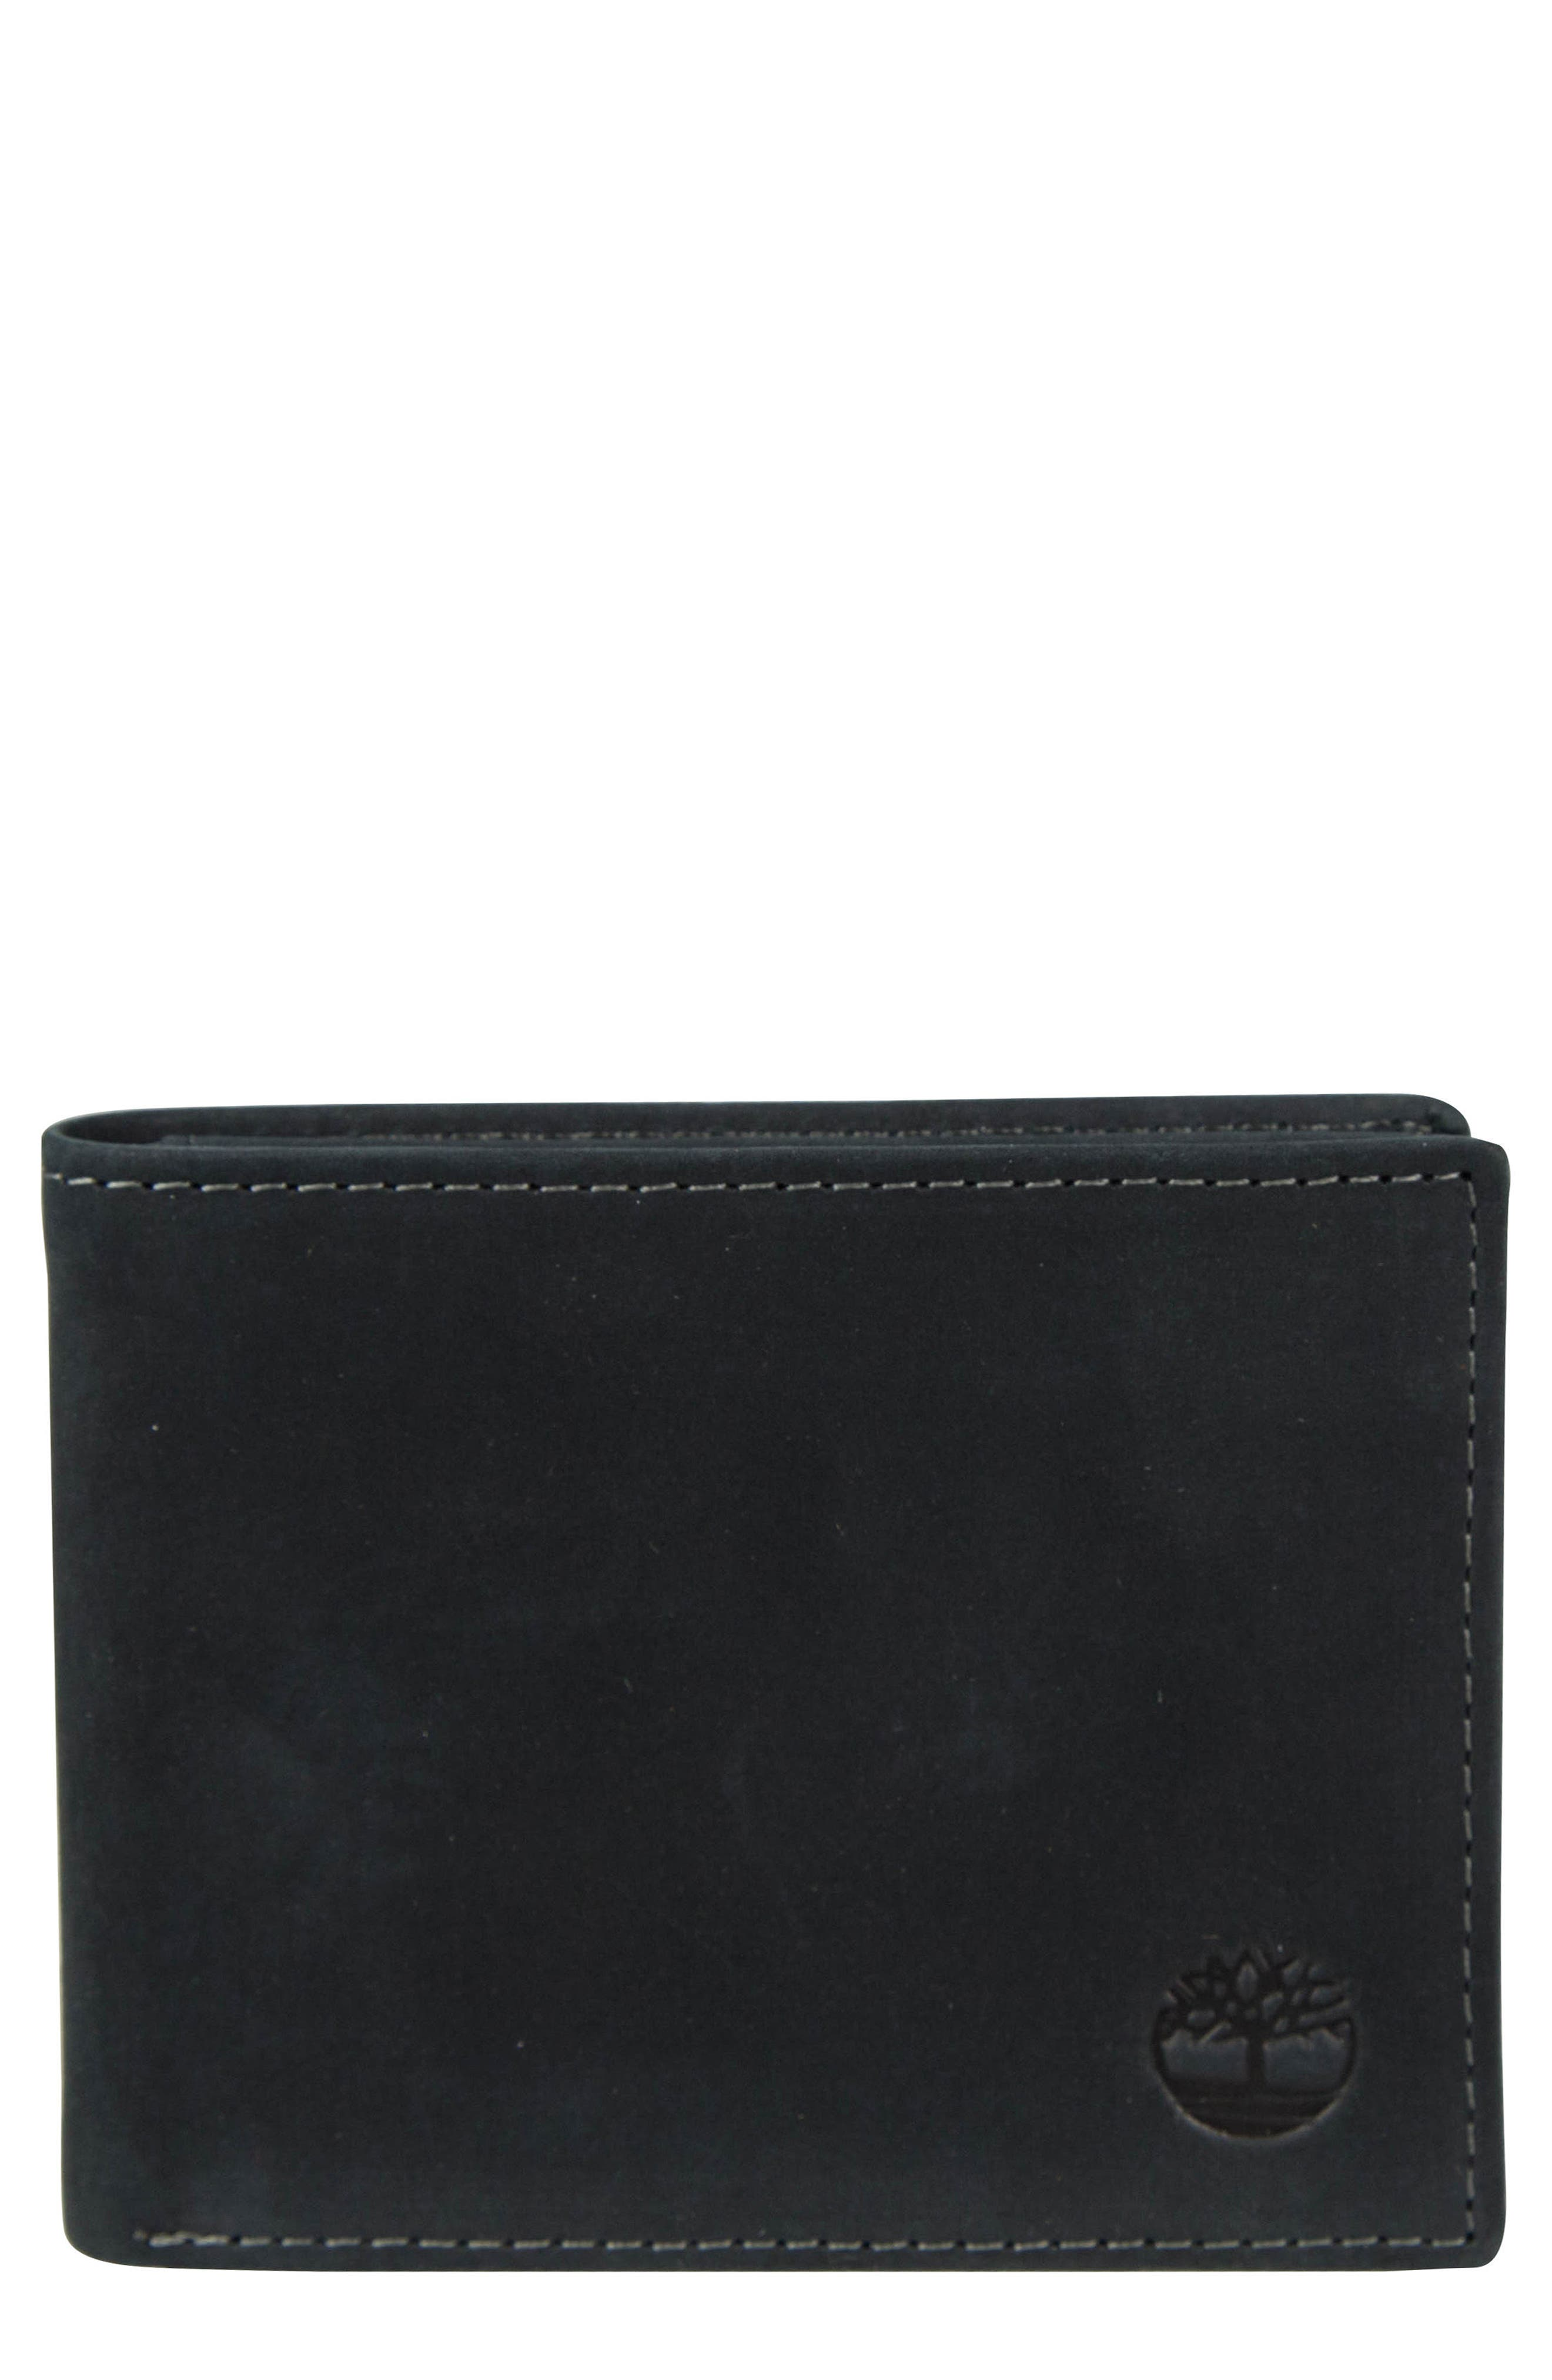 Icon Leather Wallet,                         Main,                         color, BLACK